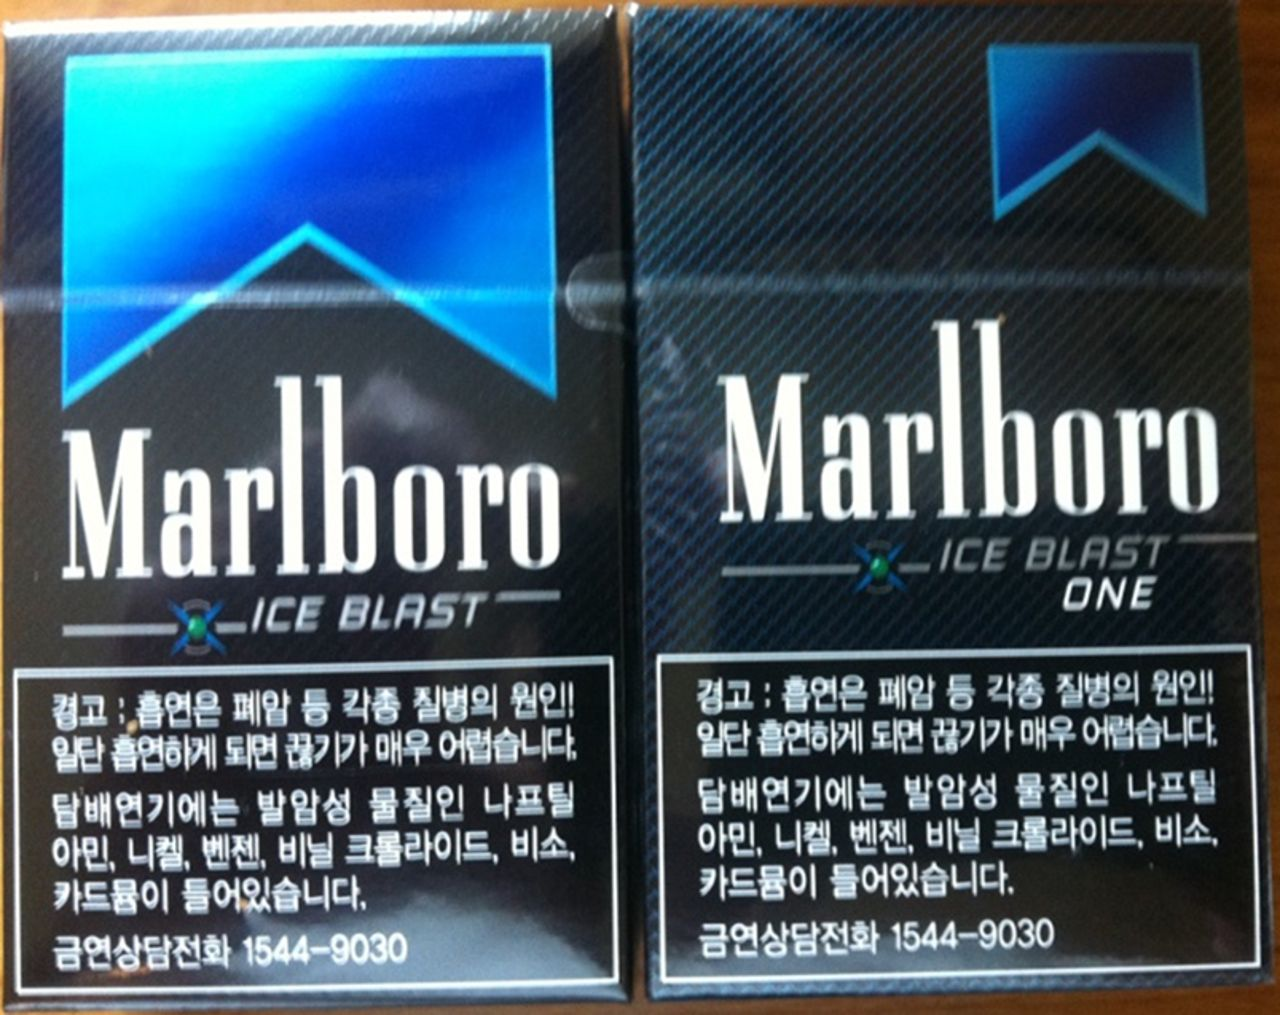 How maNY cigs are in a pack of Marlboro lights